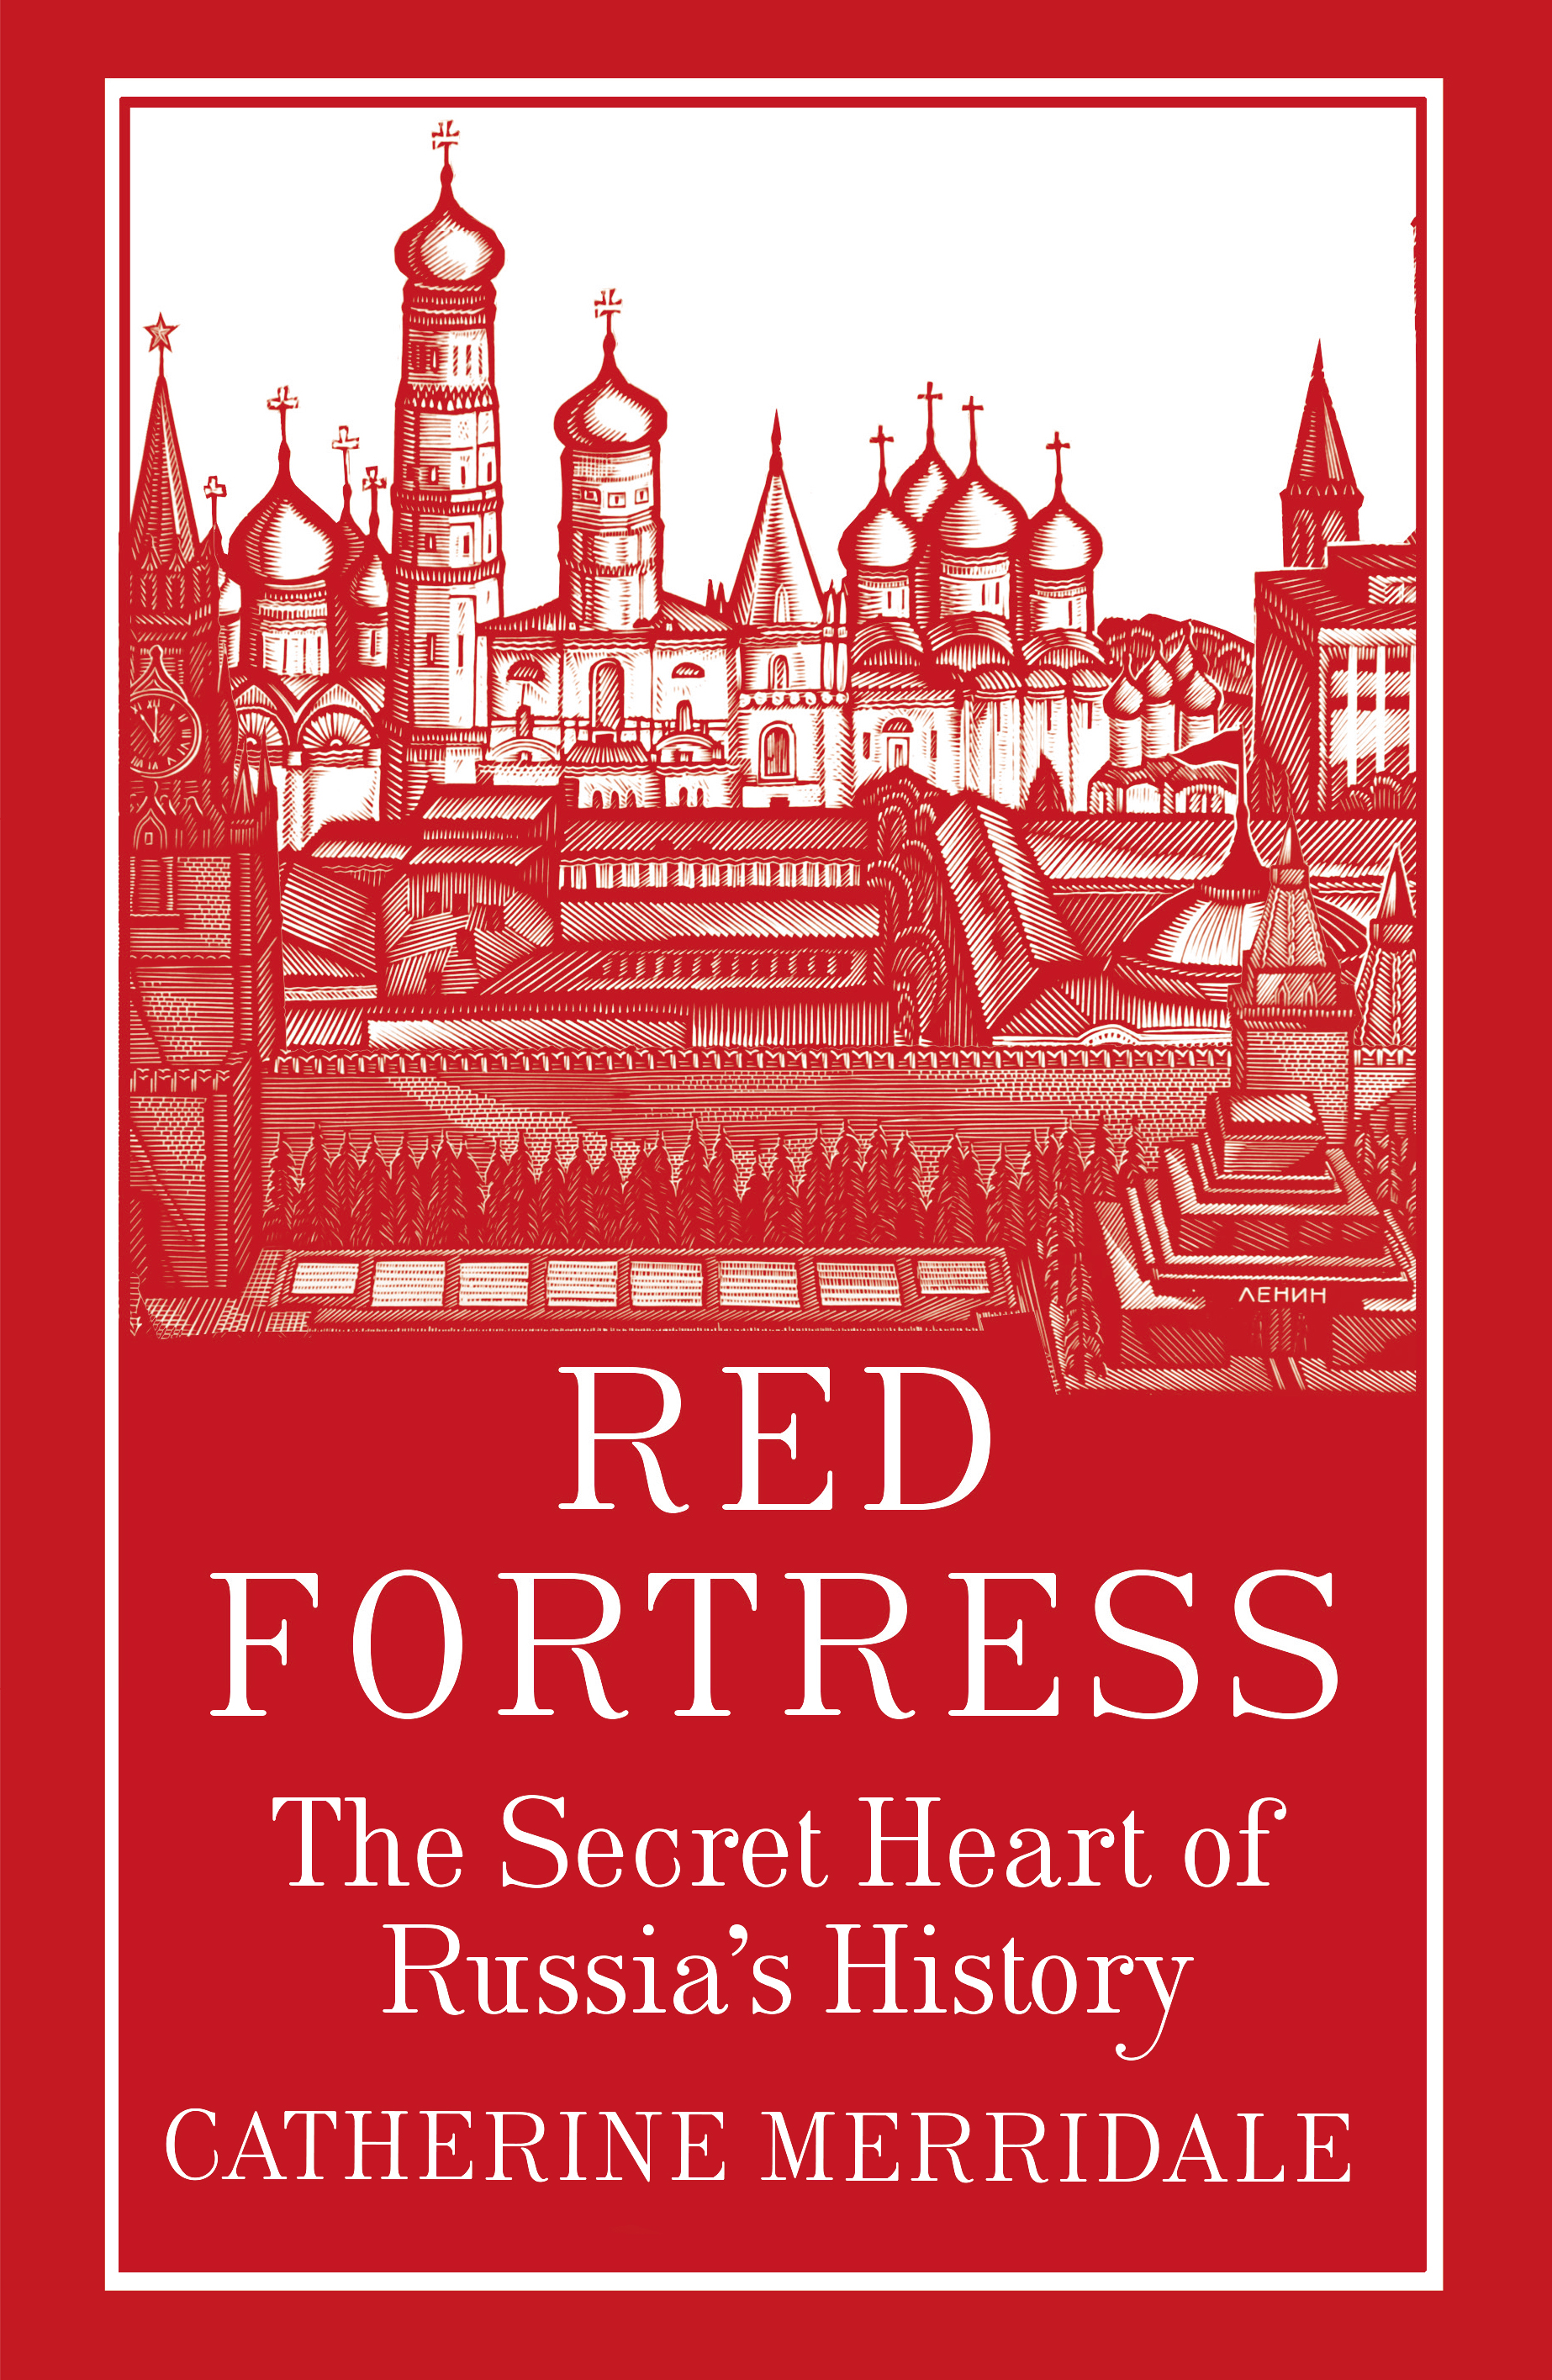 Red Fortress by Catherine Merridale, ISBN: 9781846140372